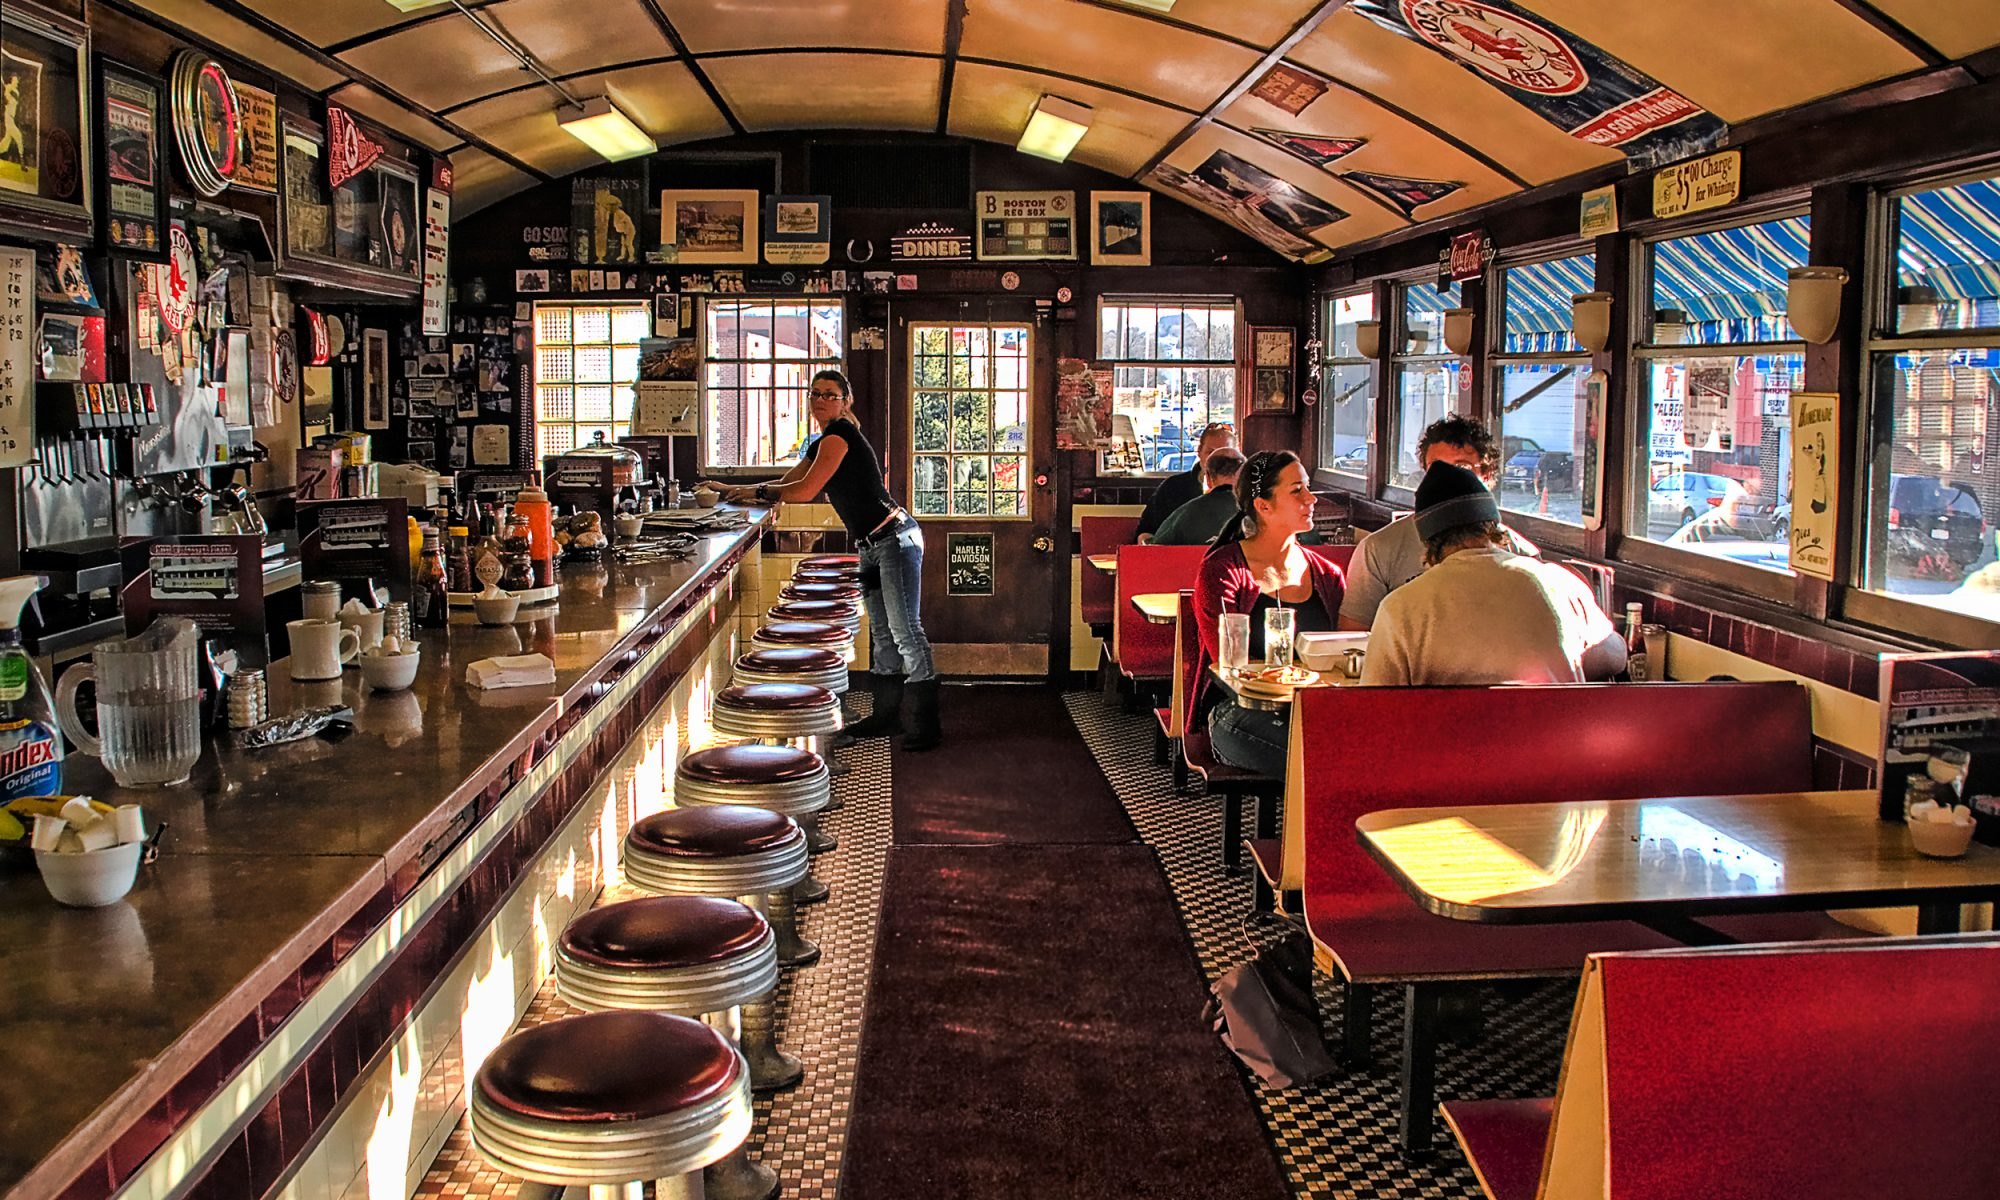 EC: In Search of Lost Time at the Miss Worcester Diner